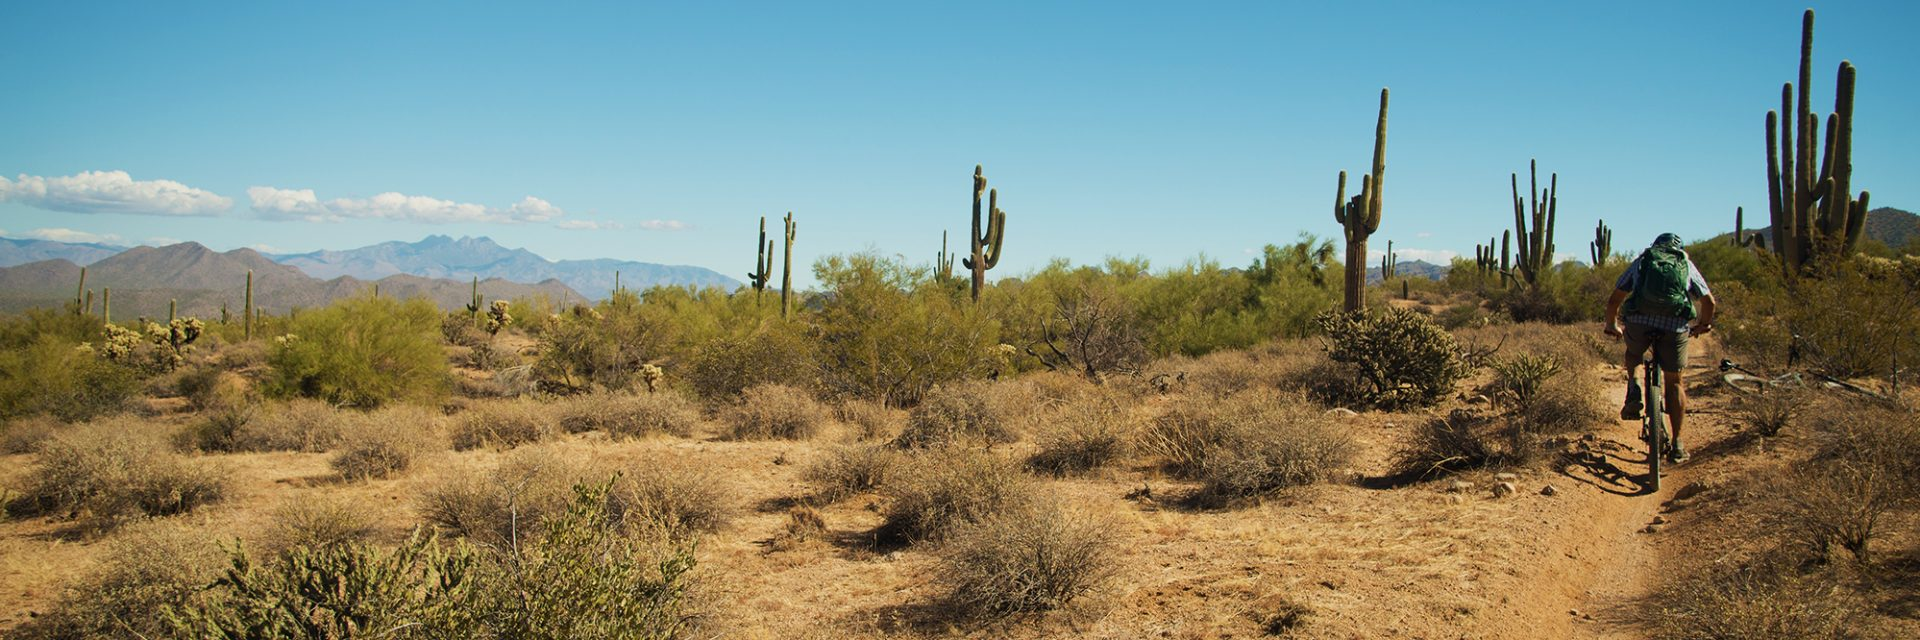 Four Peaks on skyline of Wild Horse Trail, Arizona's Sonoran Desert guided mtb tour